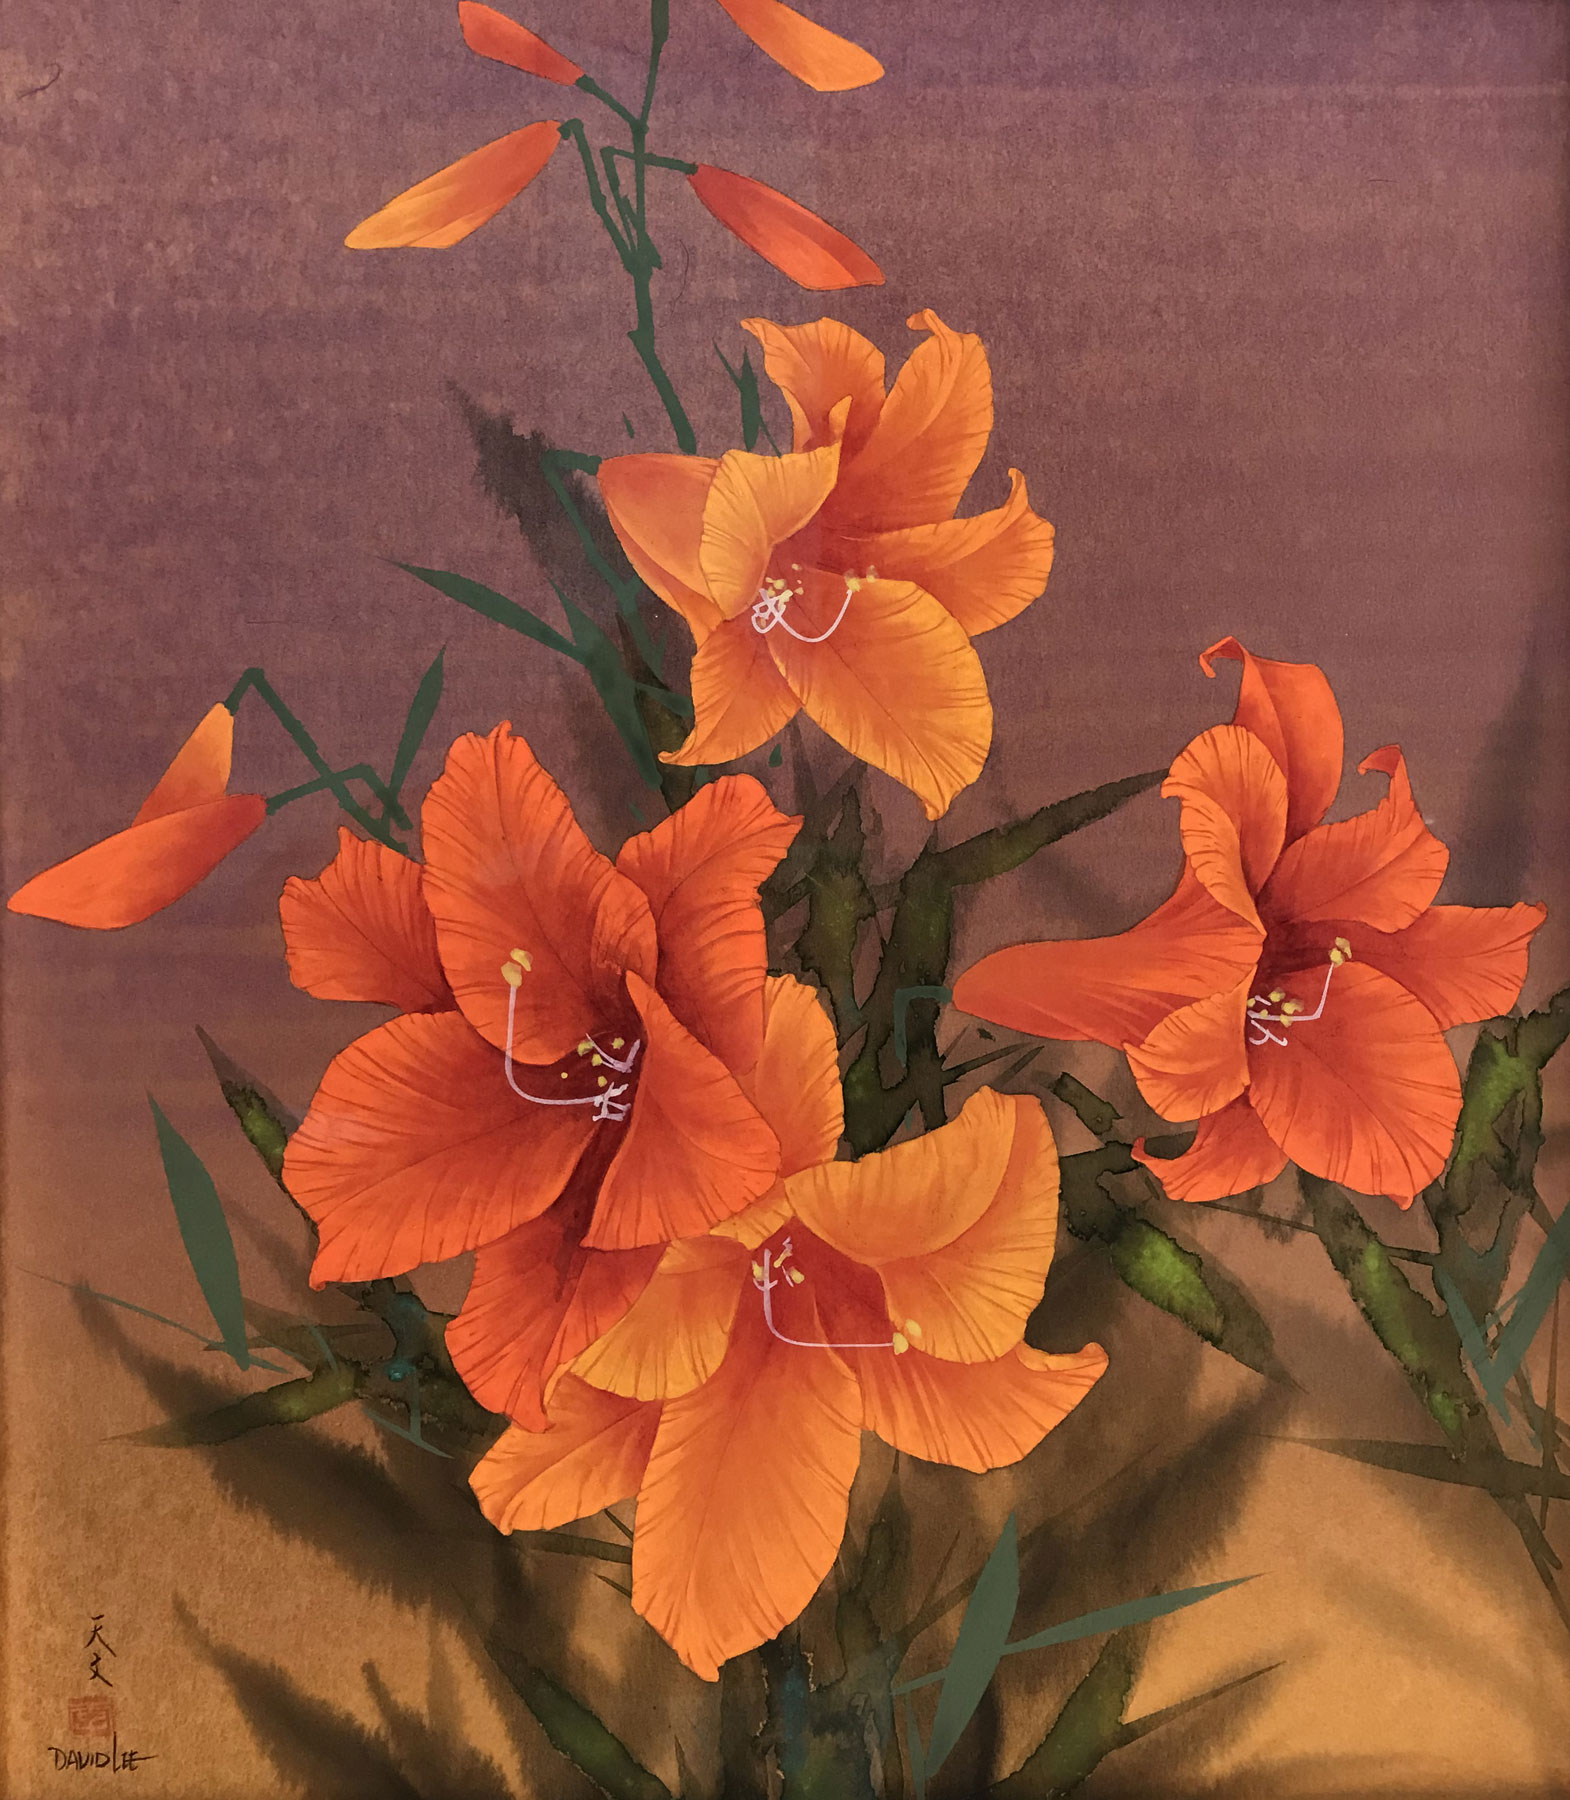 Untitled (Orange Flowers) Watercolor 27x23